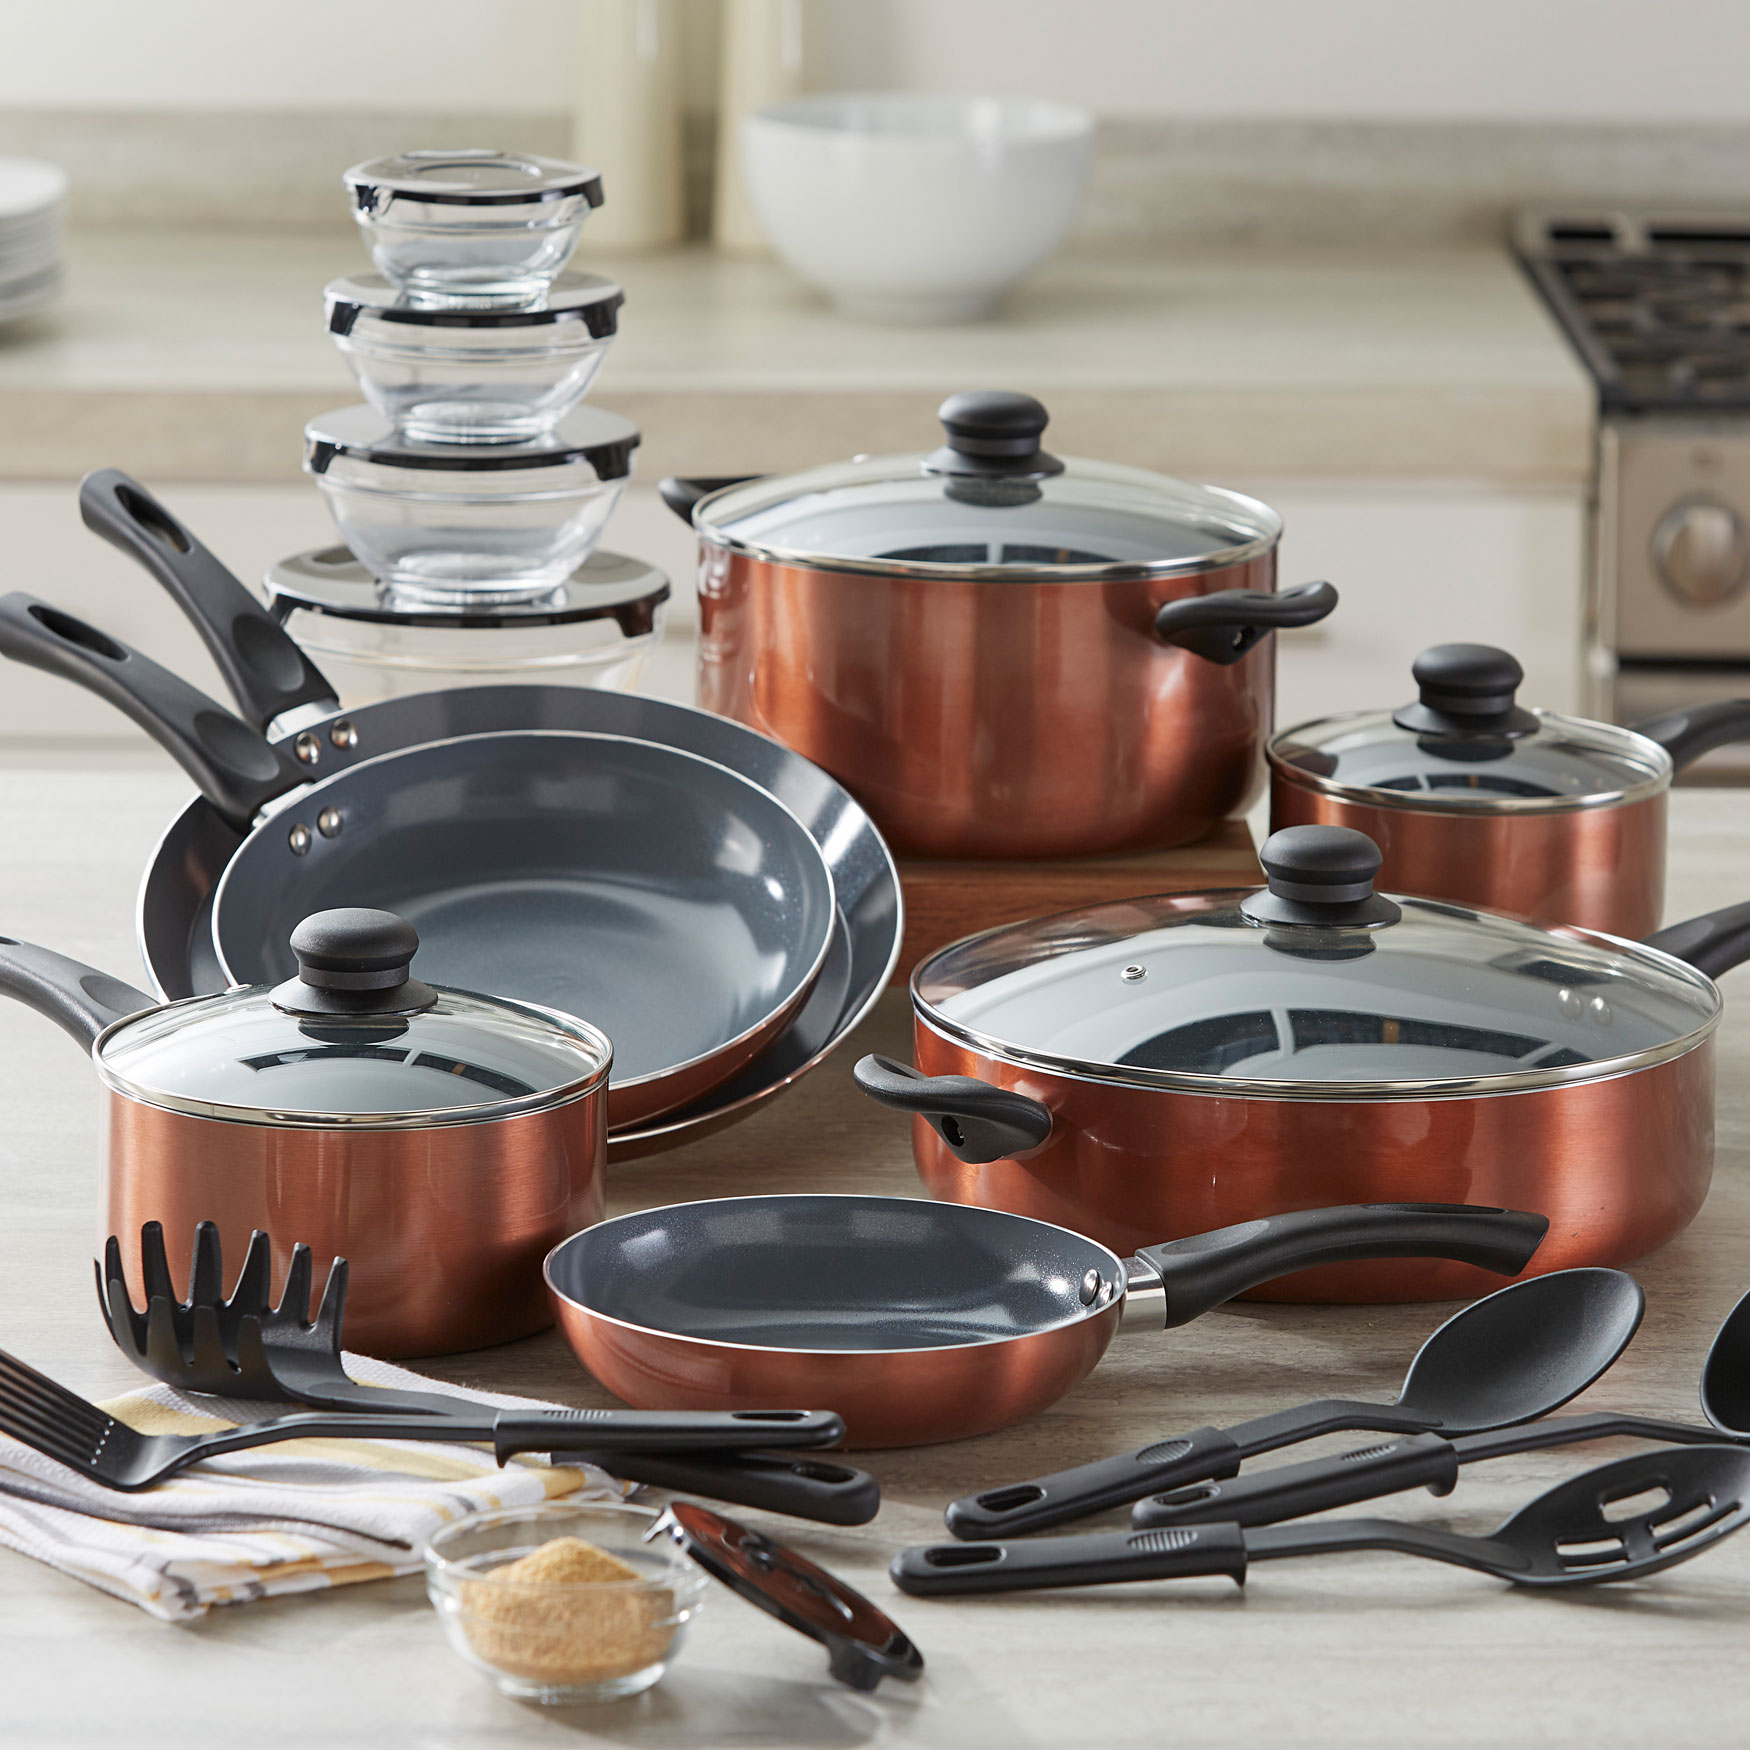 26-Pc. Aluminum Cookware Set, COPPER